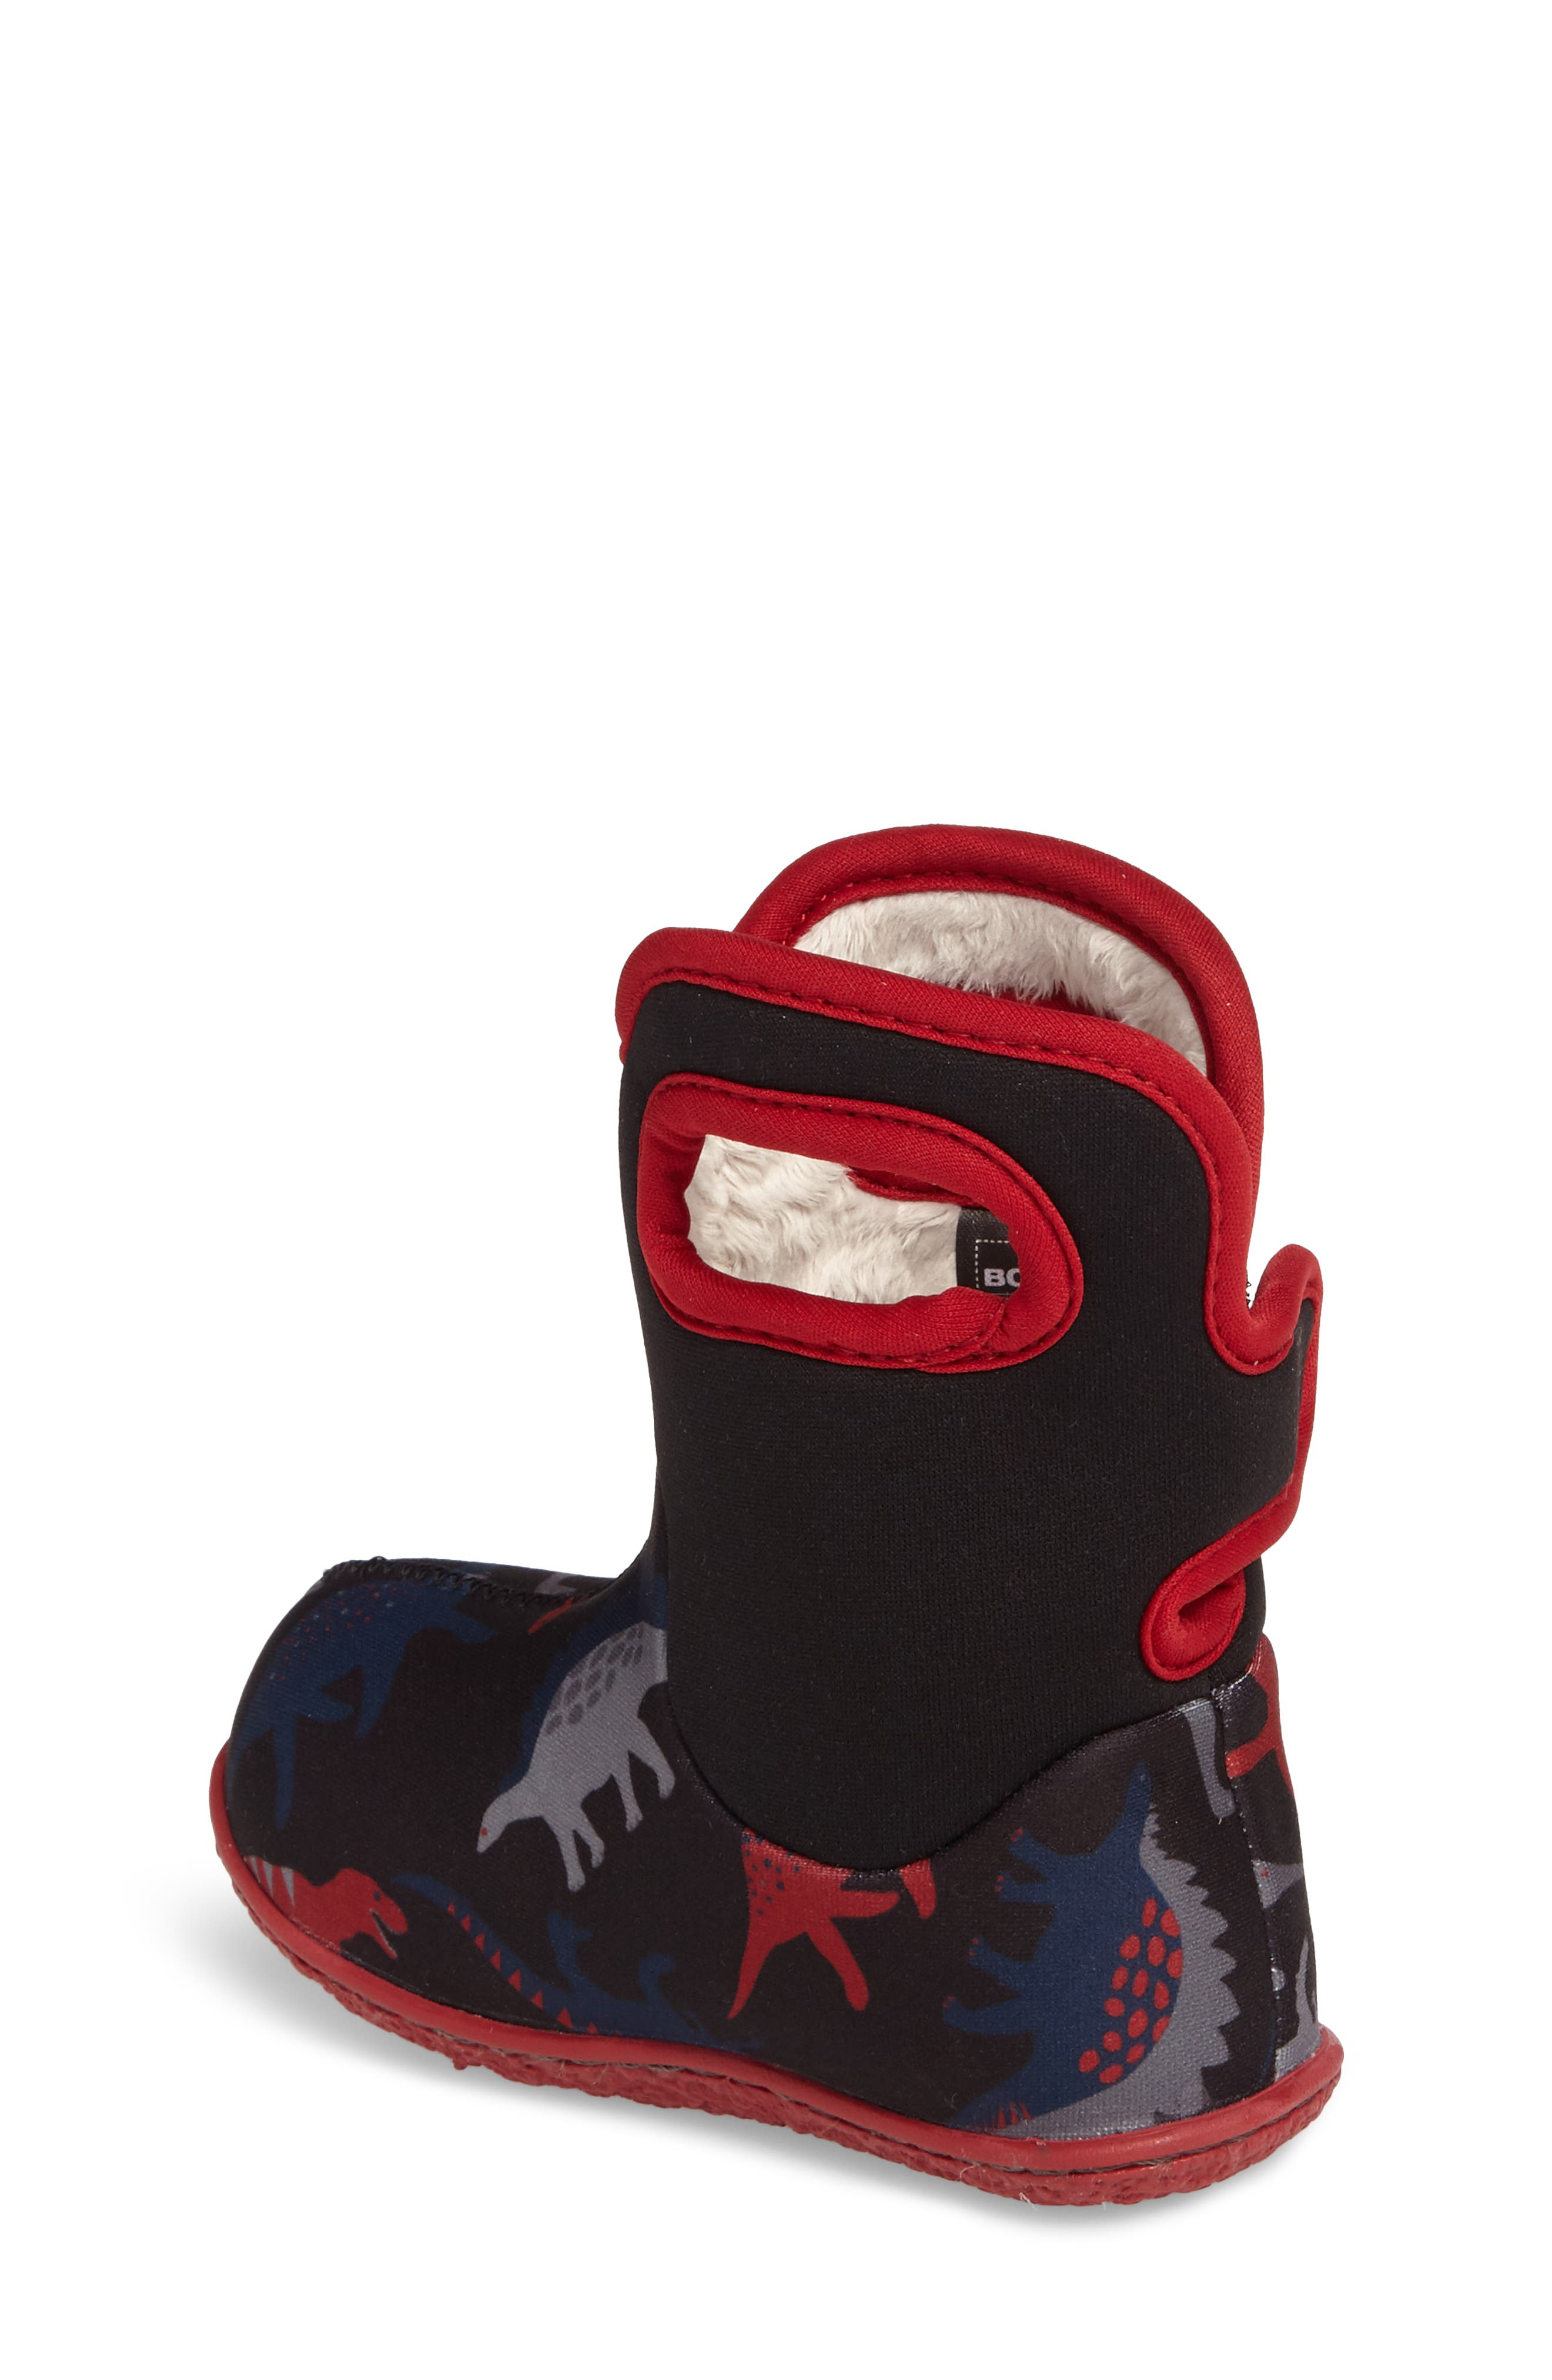 Alternate Image 2  - Bogs Baby Bog Classic Dino Insulated Waterproof Boot (Baby, Walker & Toddler)